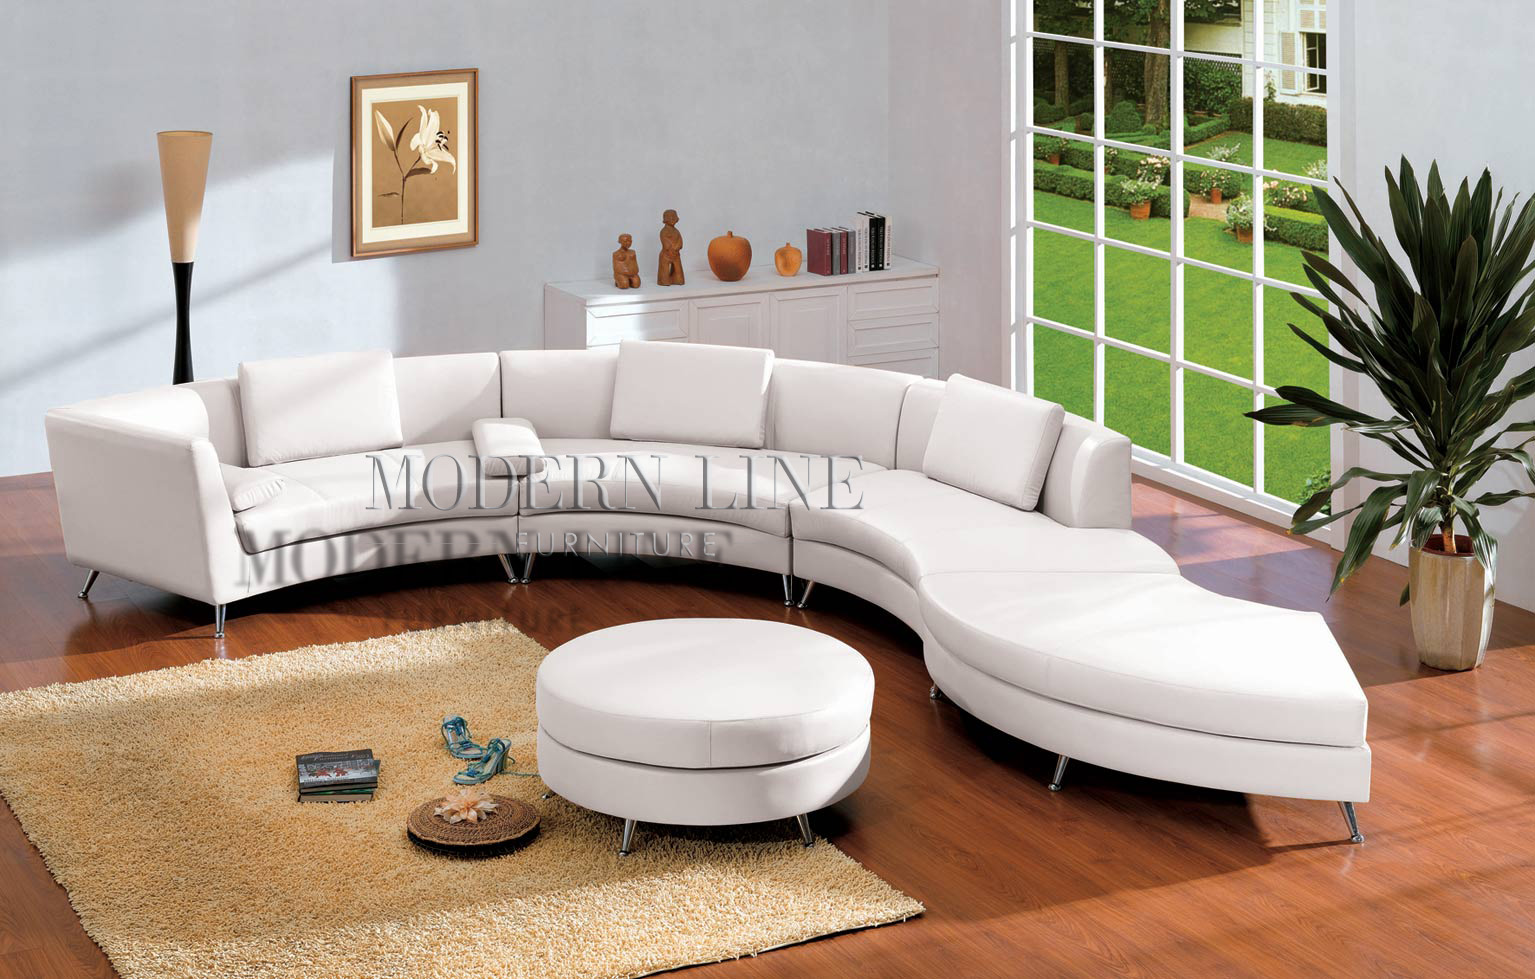 modern line furniture  commercial furniture  custom made  - modern line furniture  commercial furniture  custom made furniture seating collection    in contemporary furniture design white leathersectional